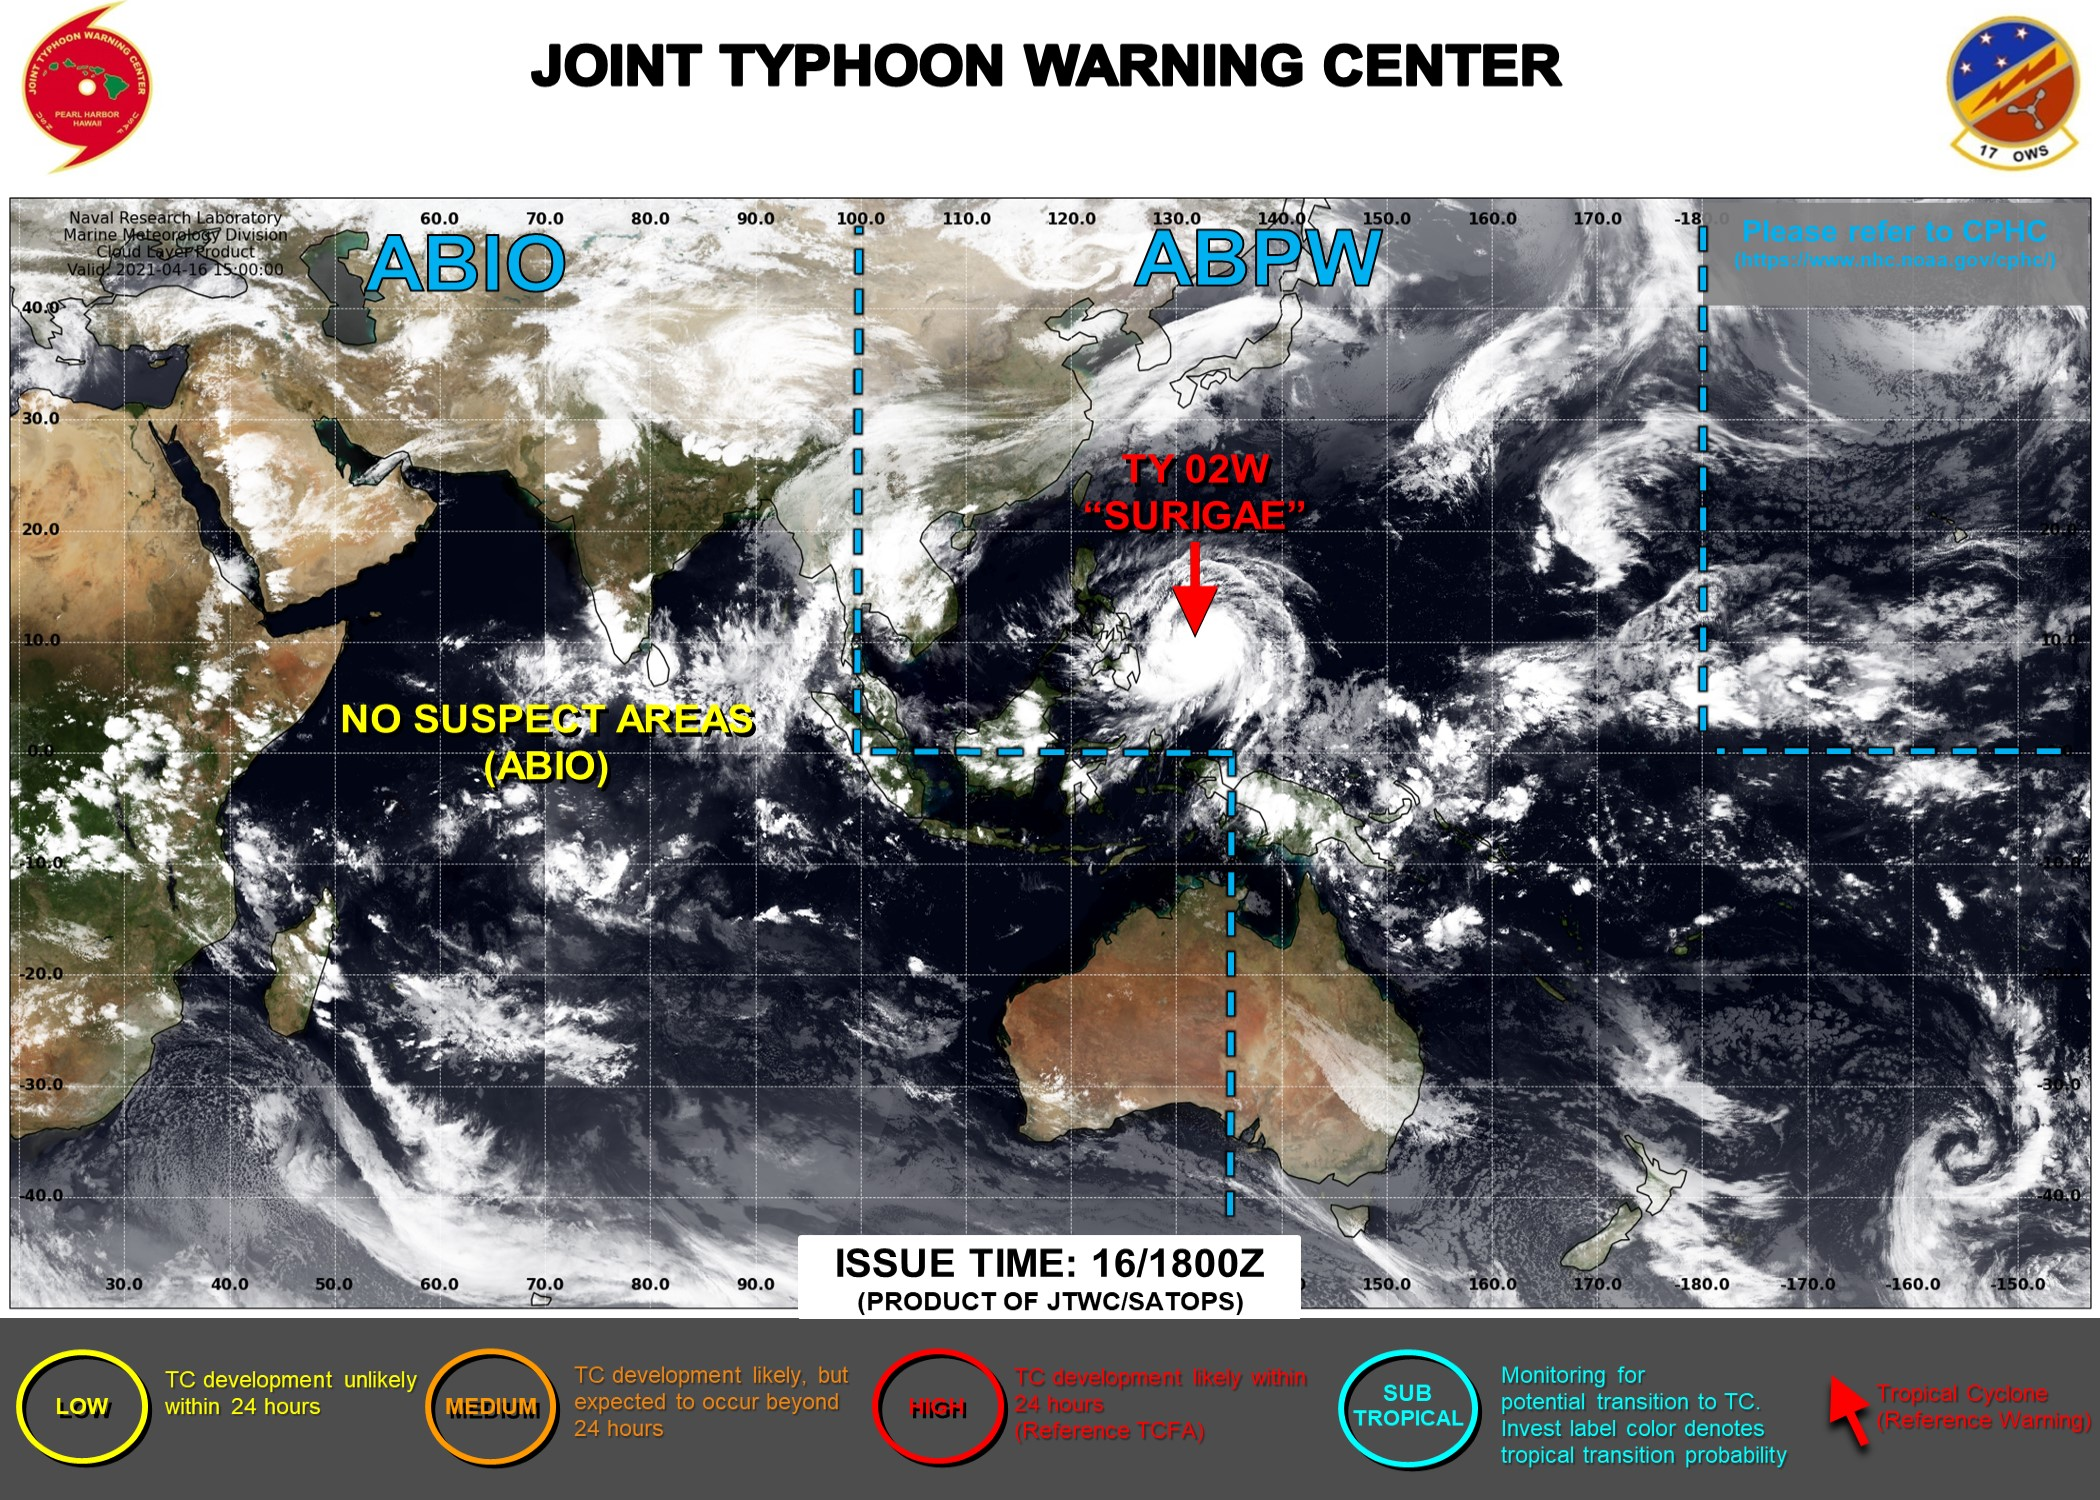 17/03UTC. THE JTWC HAS BEEN ISSUING 6HOURLY WARNINGS ON 02W(SURIGAE) AND 3HOURLY SATELLITE BULLETINS.